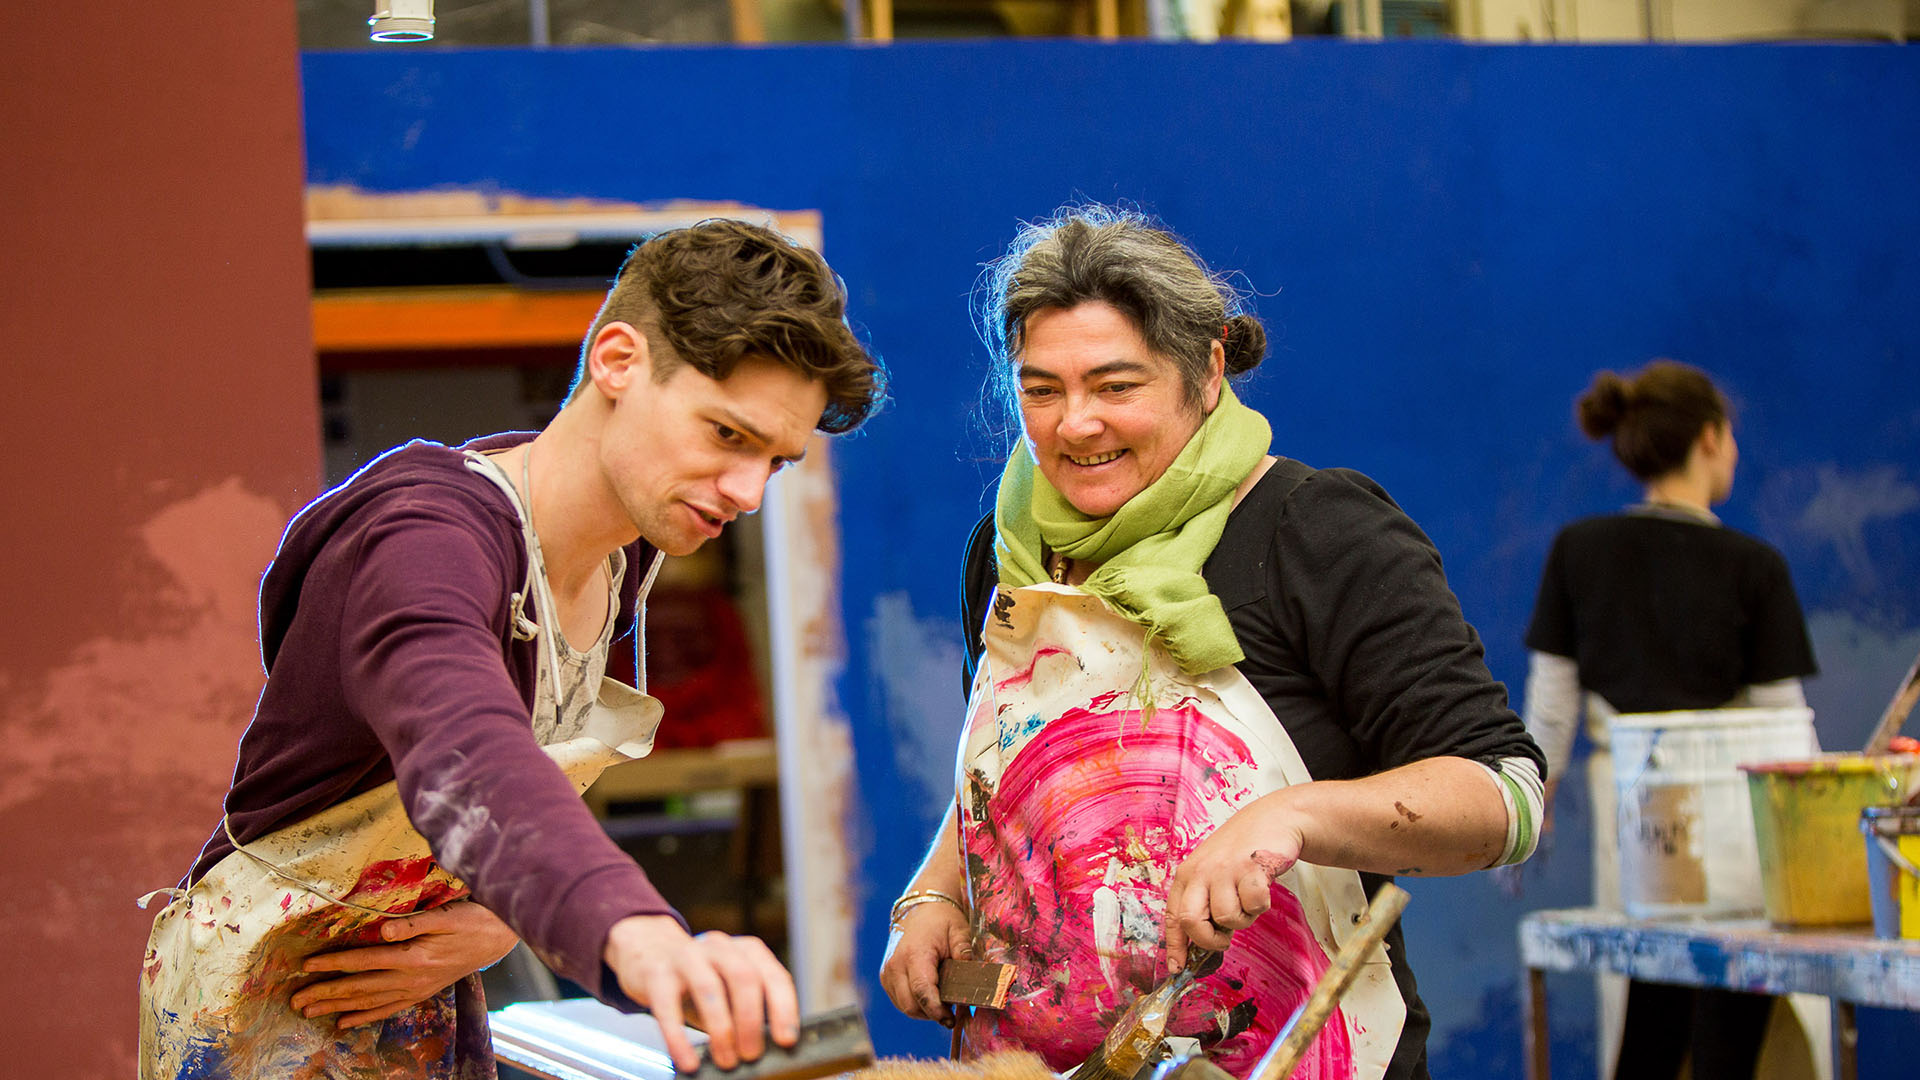 A woman and a man are creating artwork on a workbench